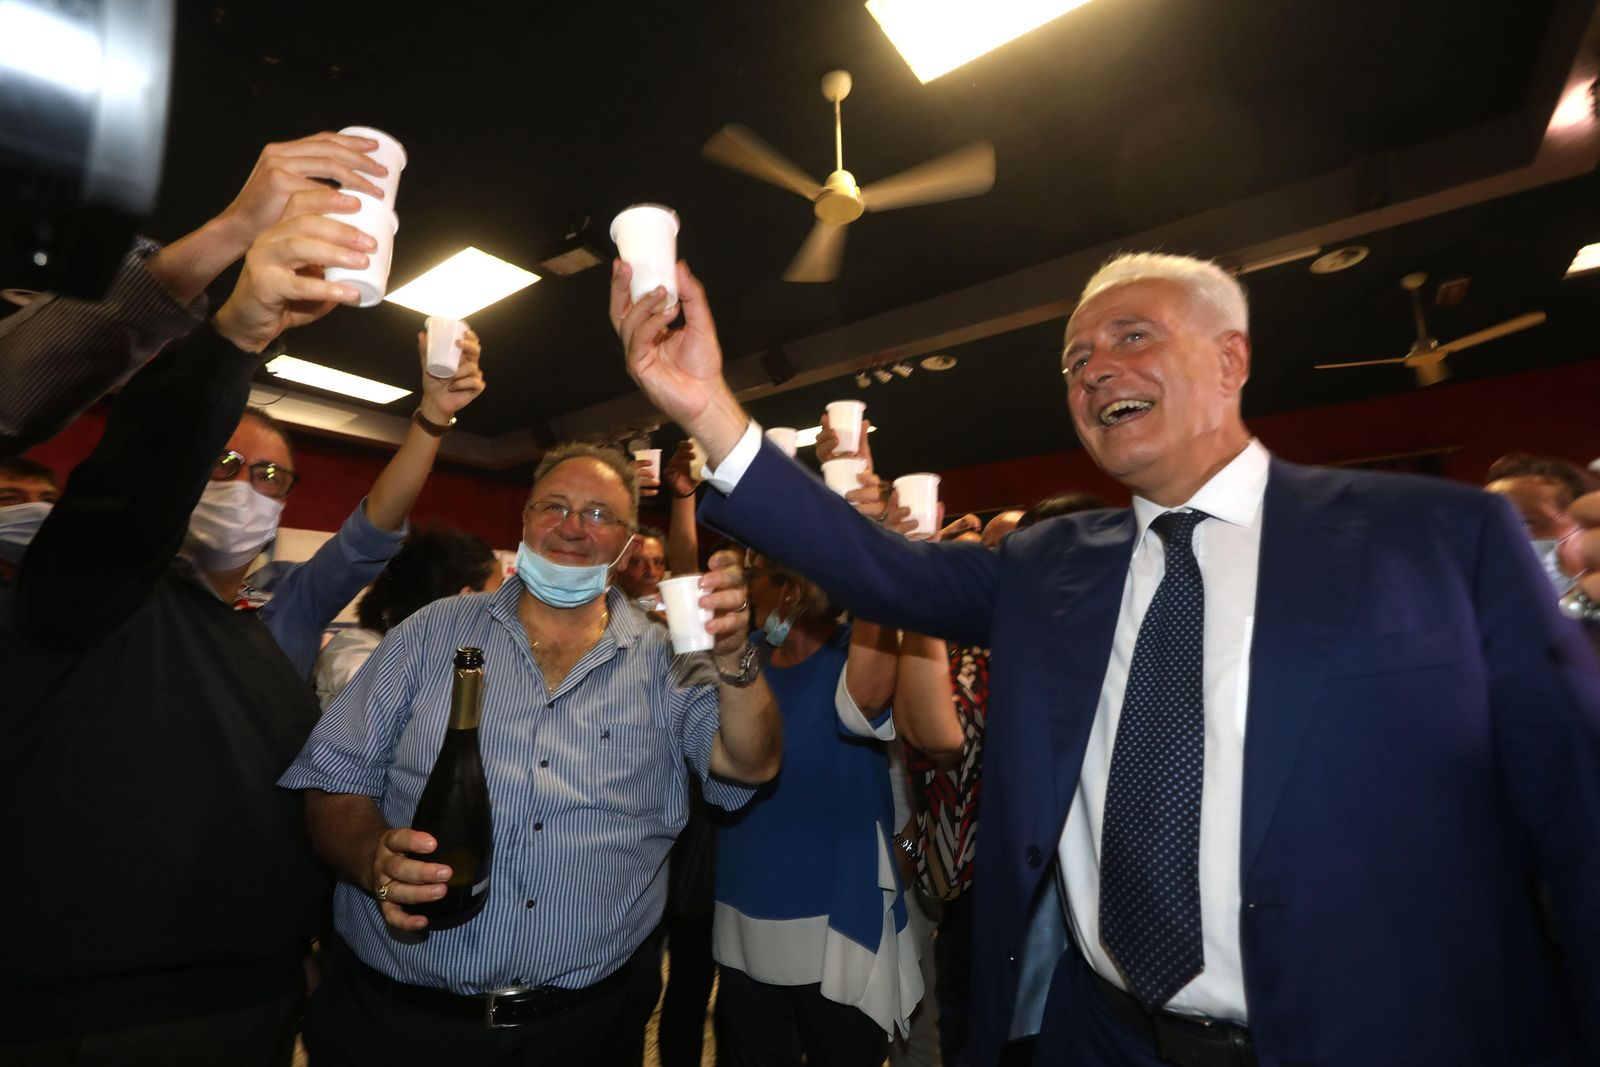 Regional elections in Italy; Toscana Region, Florence - 21 Sep 2020